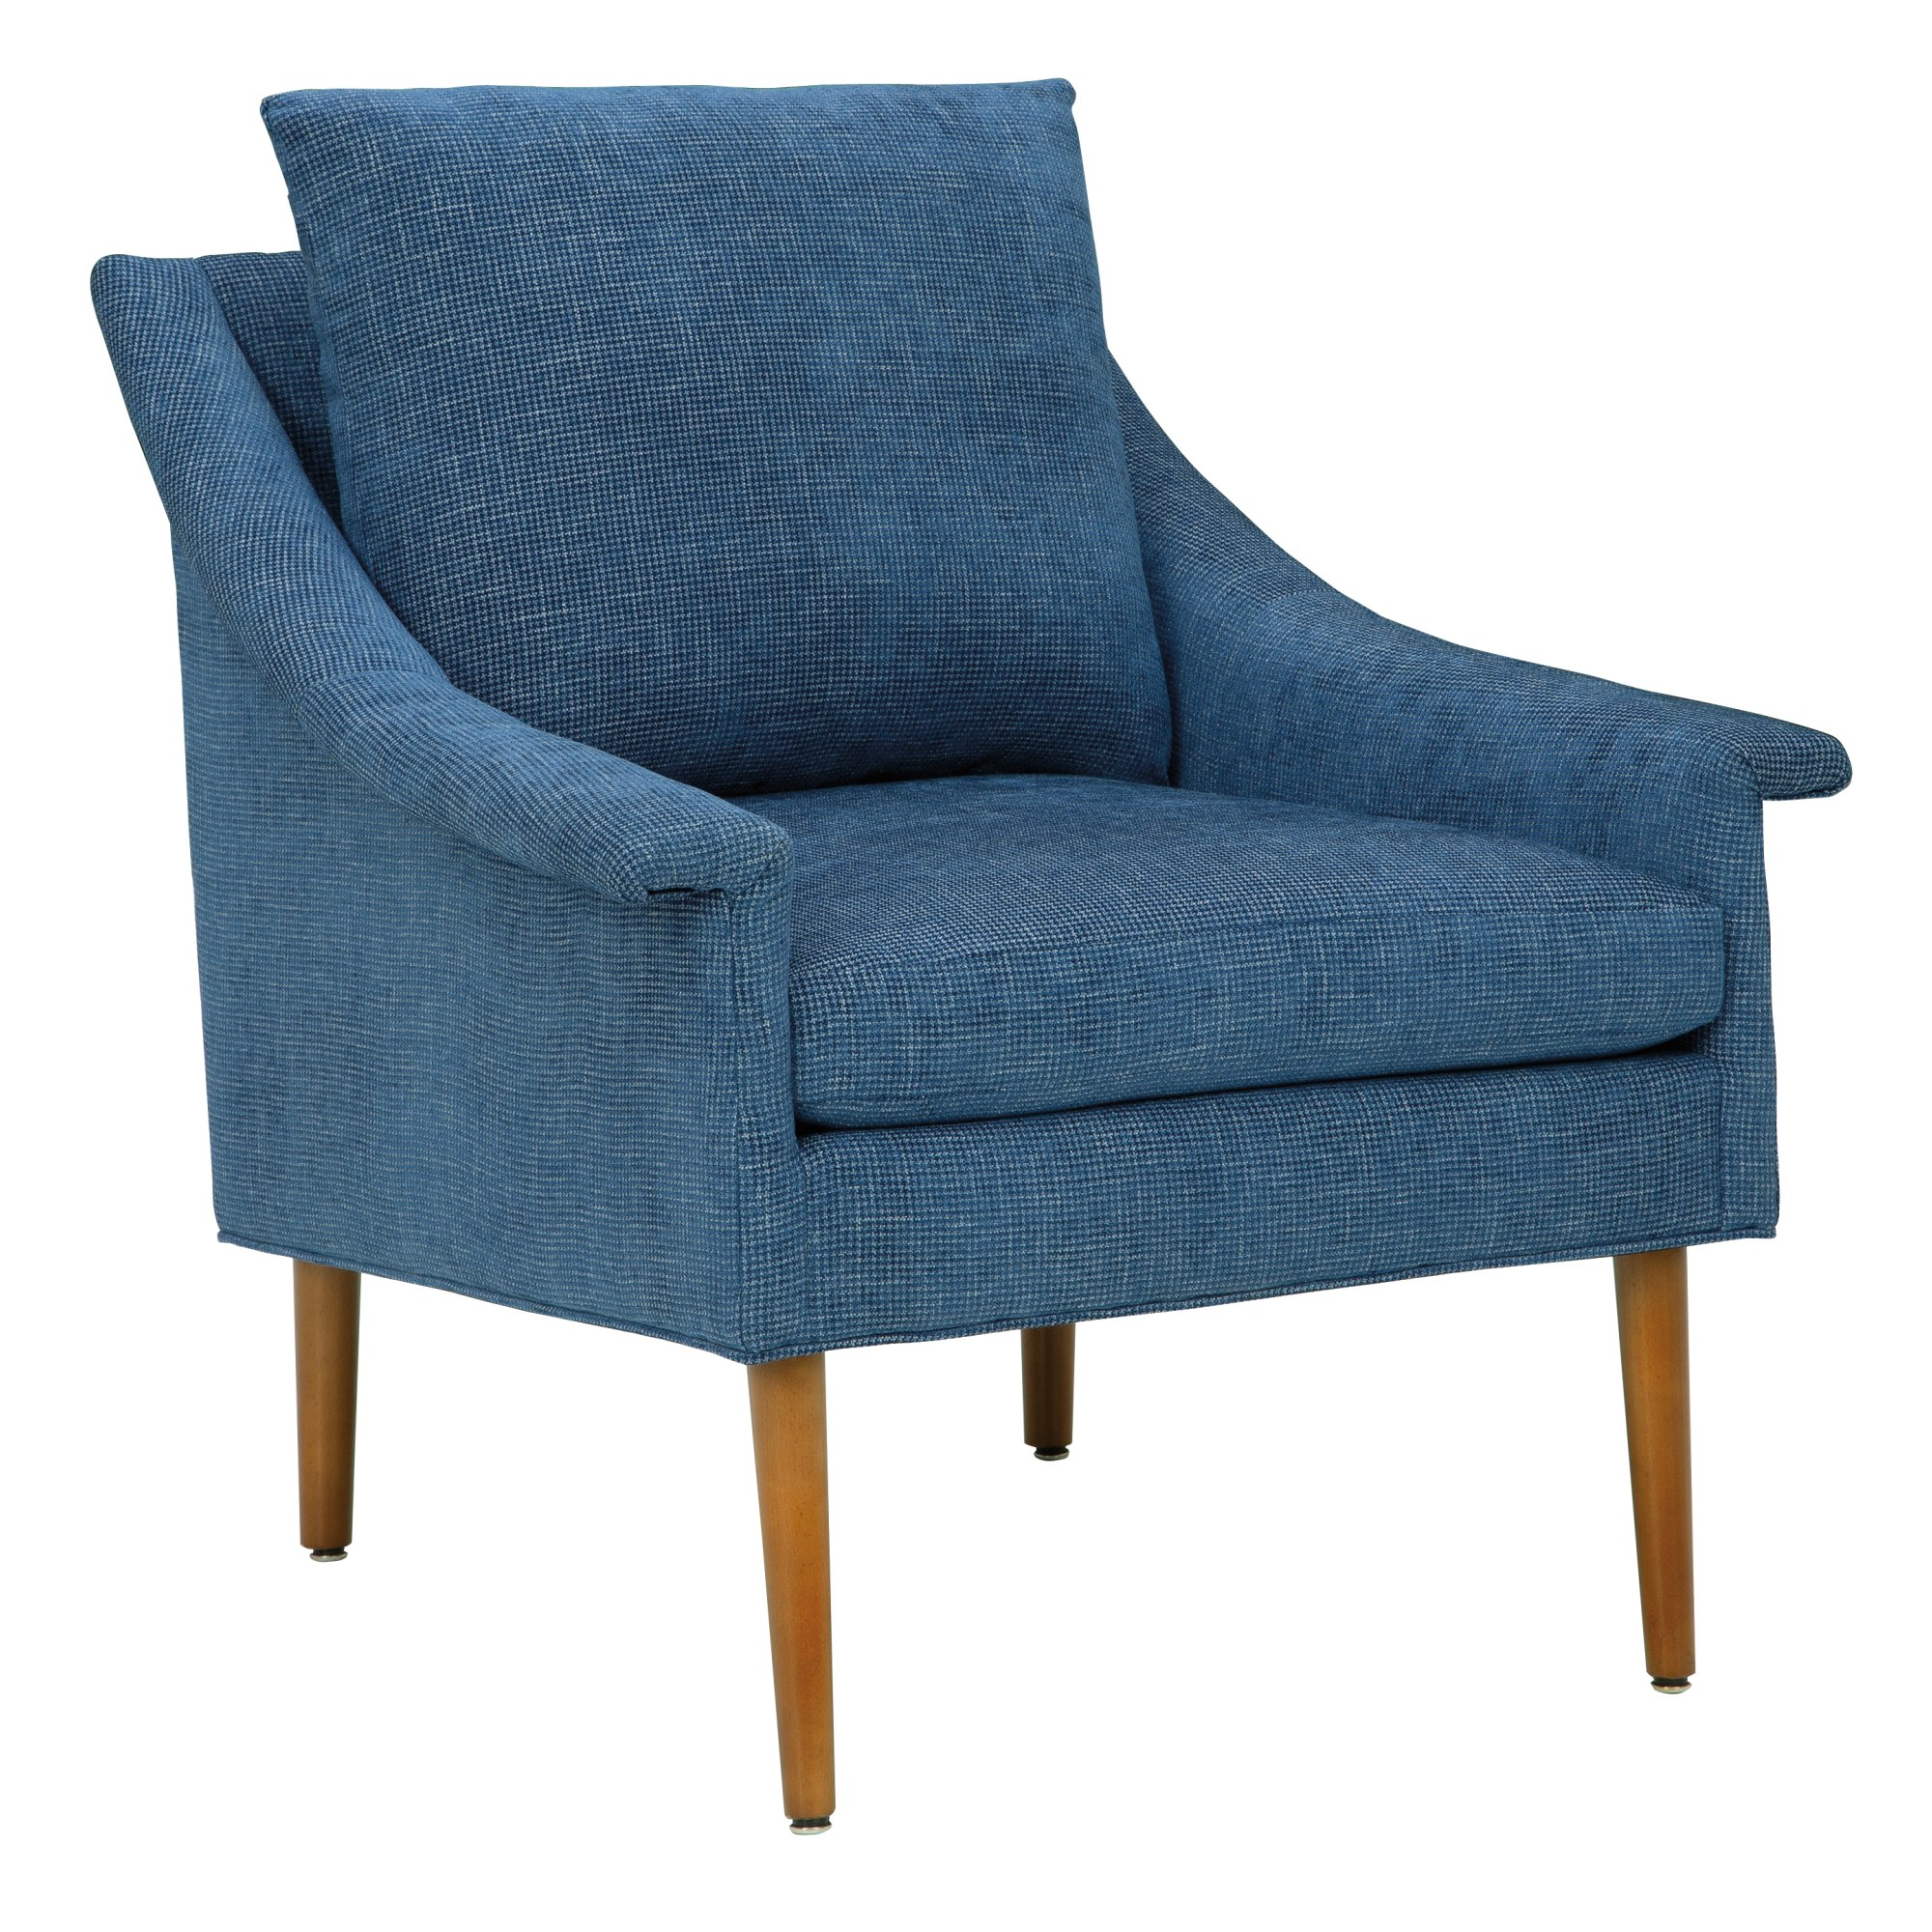 Image for 1909 Trudy Accent Chair from Hekman Official Website